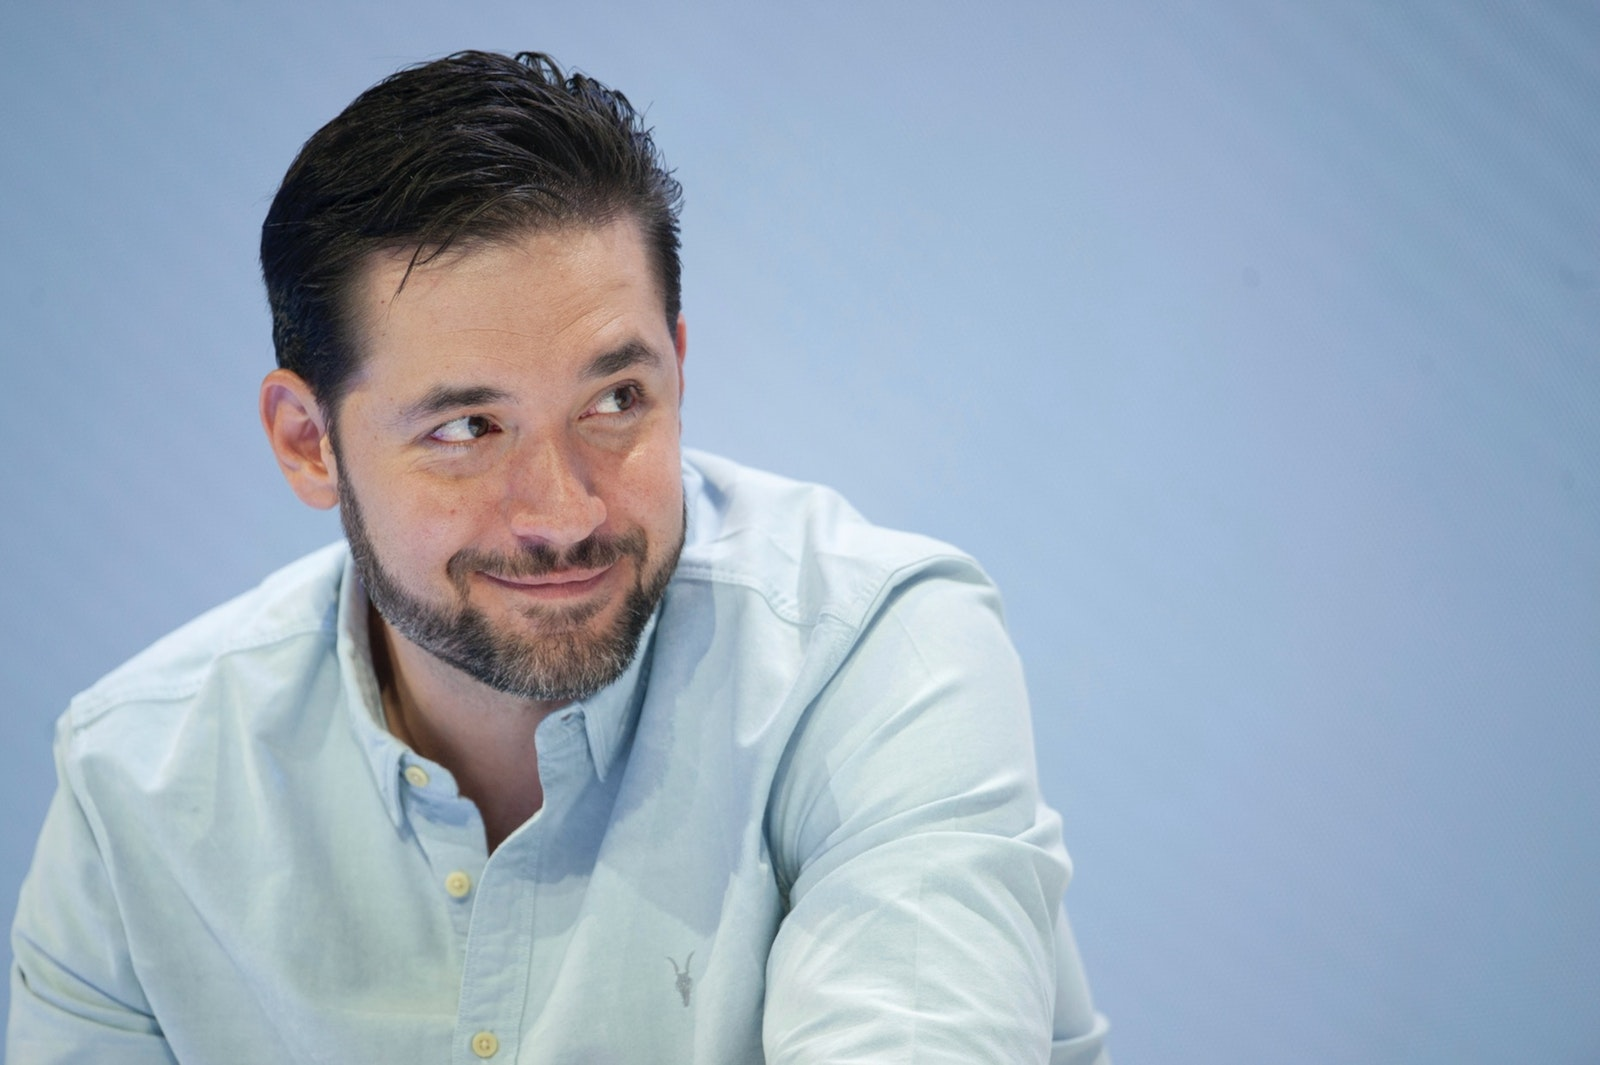 Alexis Ohanian, co-founder of Reddit and Initialized Capital, in August 2019. Photo: AP